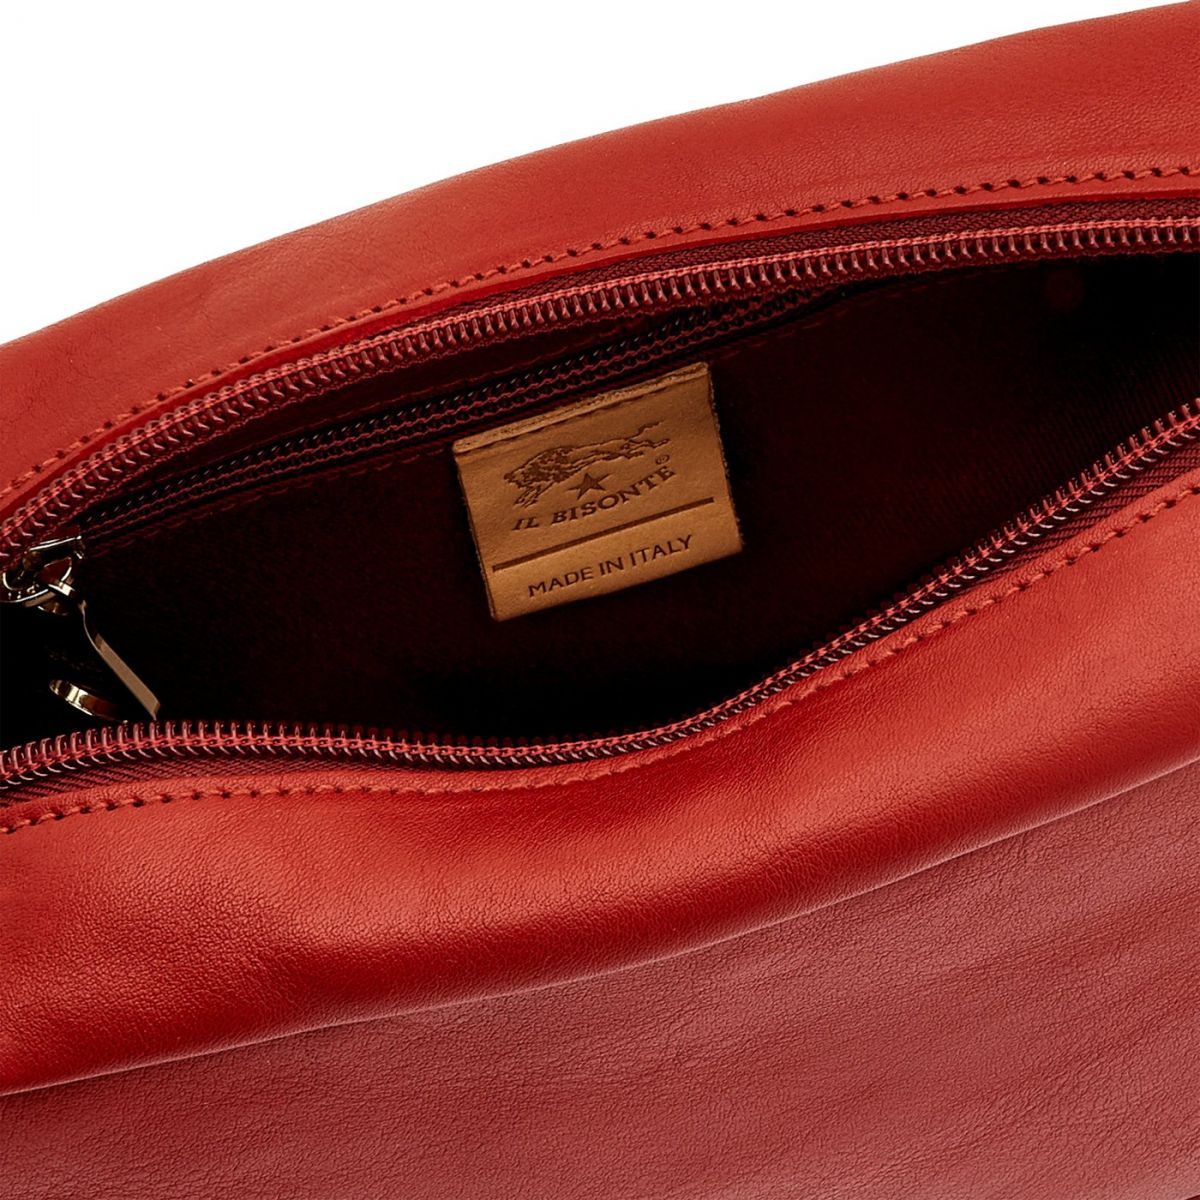 Women's Crossbody Bag Salina in Cowhide Leather BCR199 color Red | Details